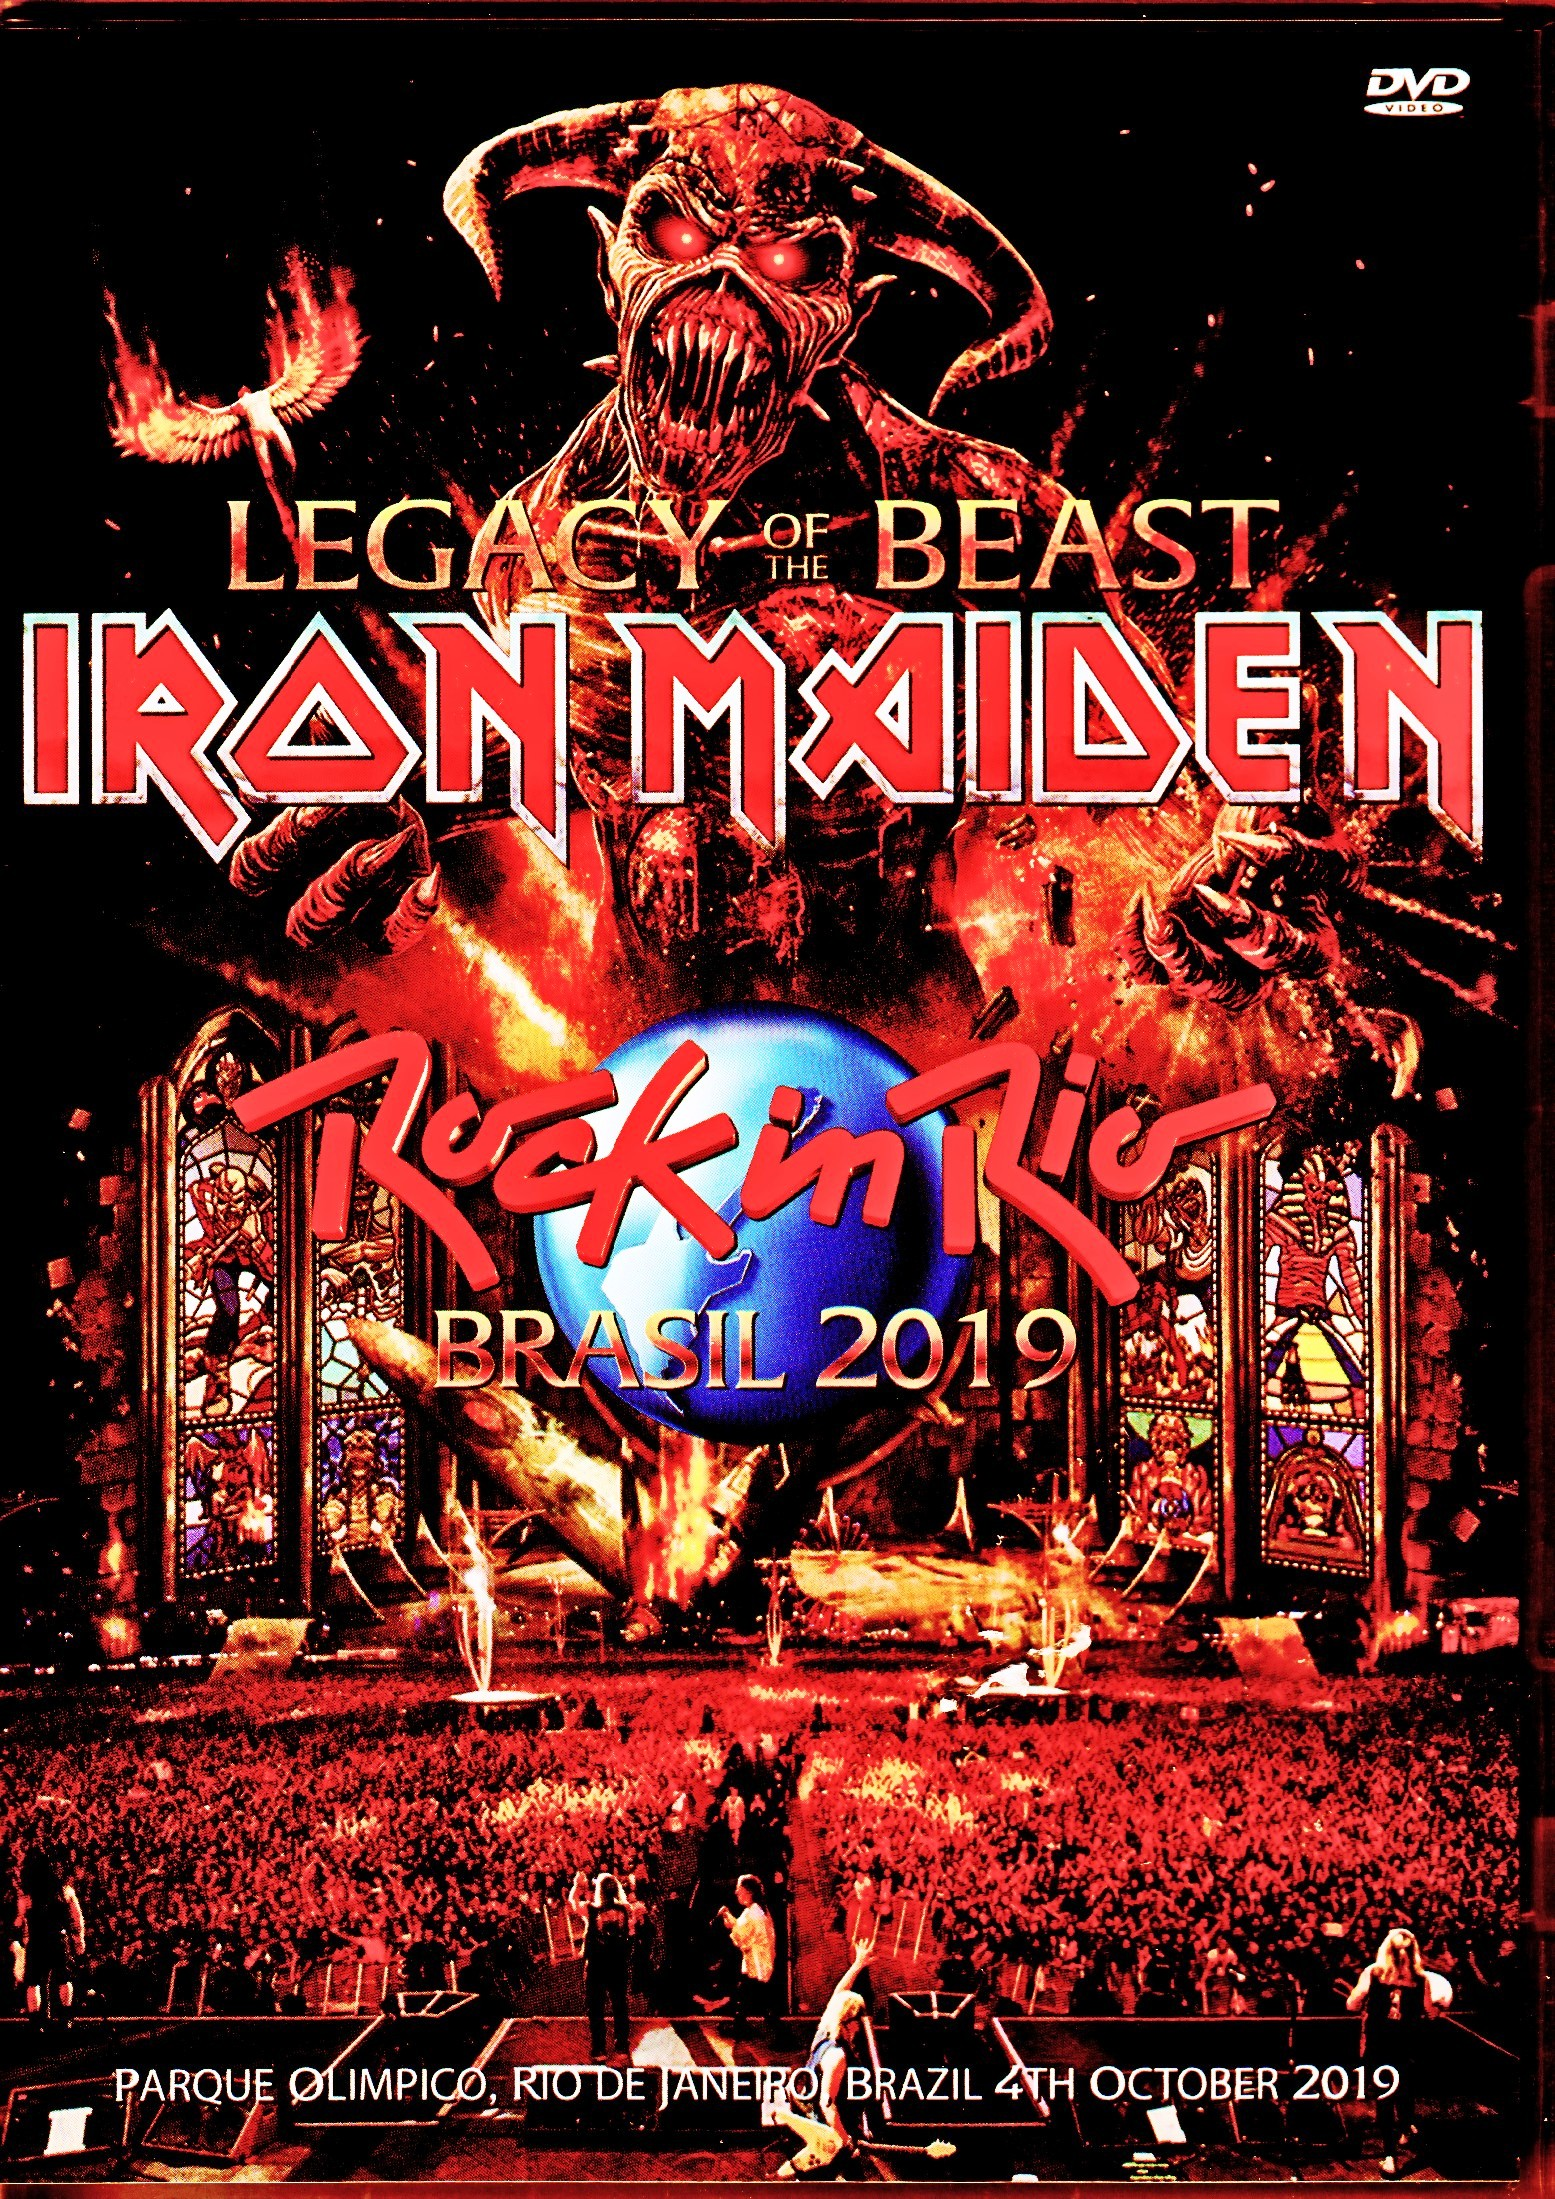 Iron Maiden アイアン・メイデン/Brazil 2019 Upgrade & more